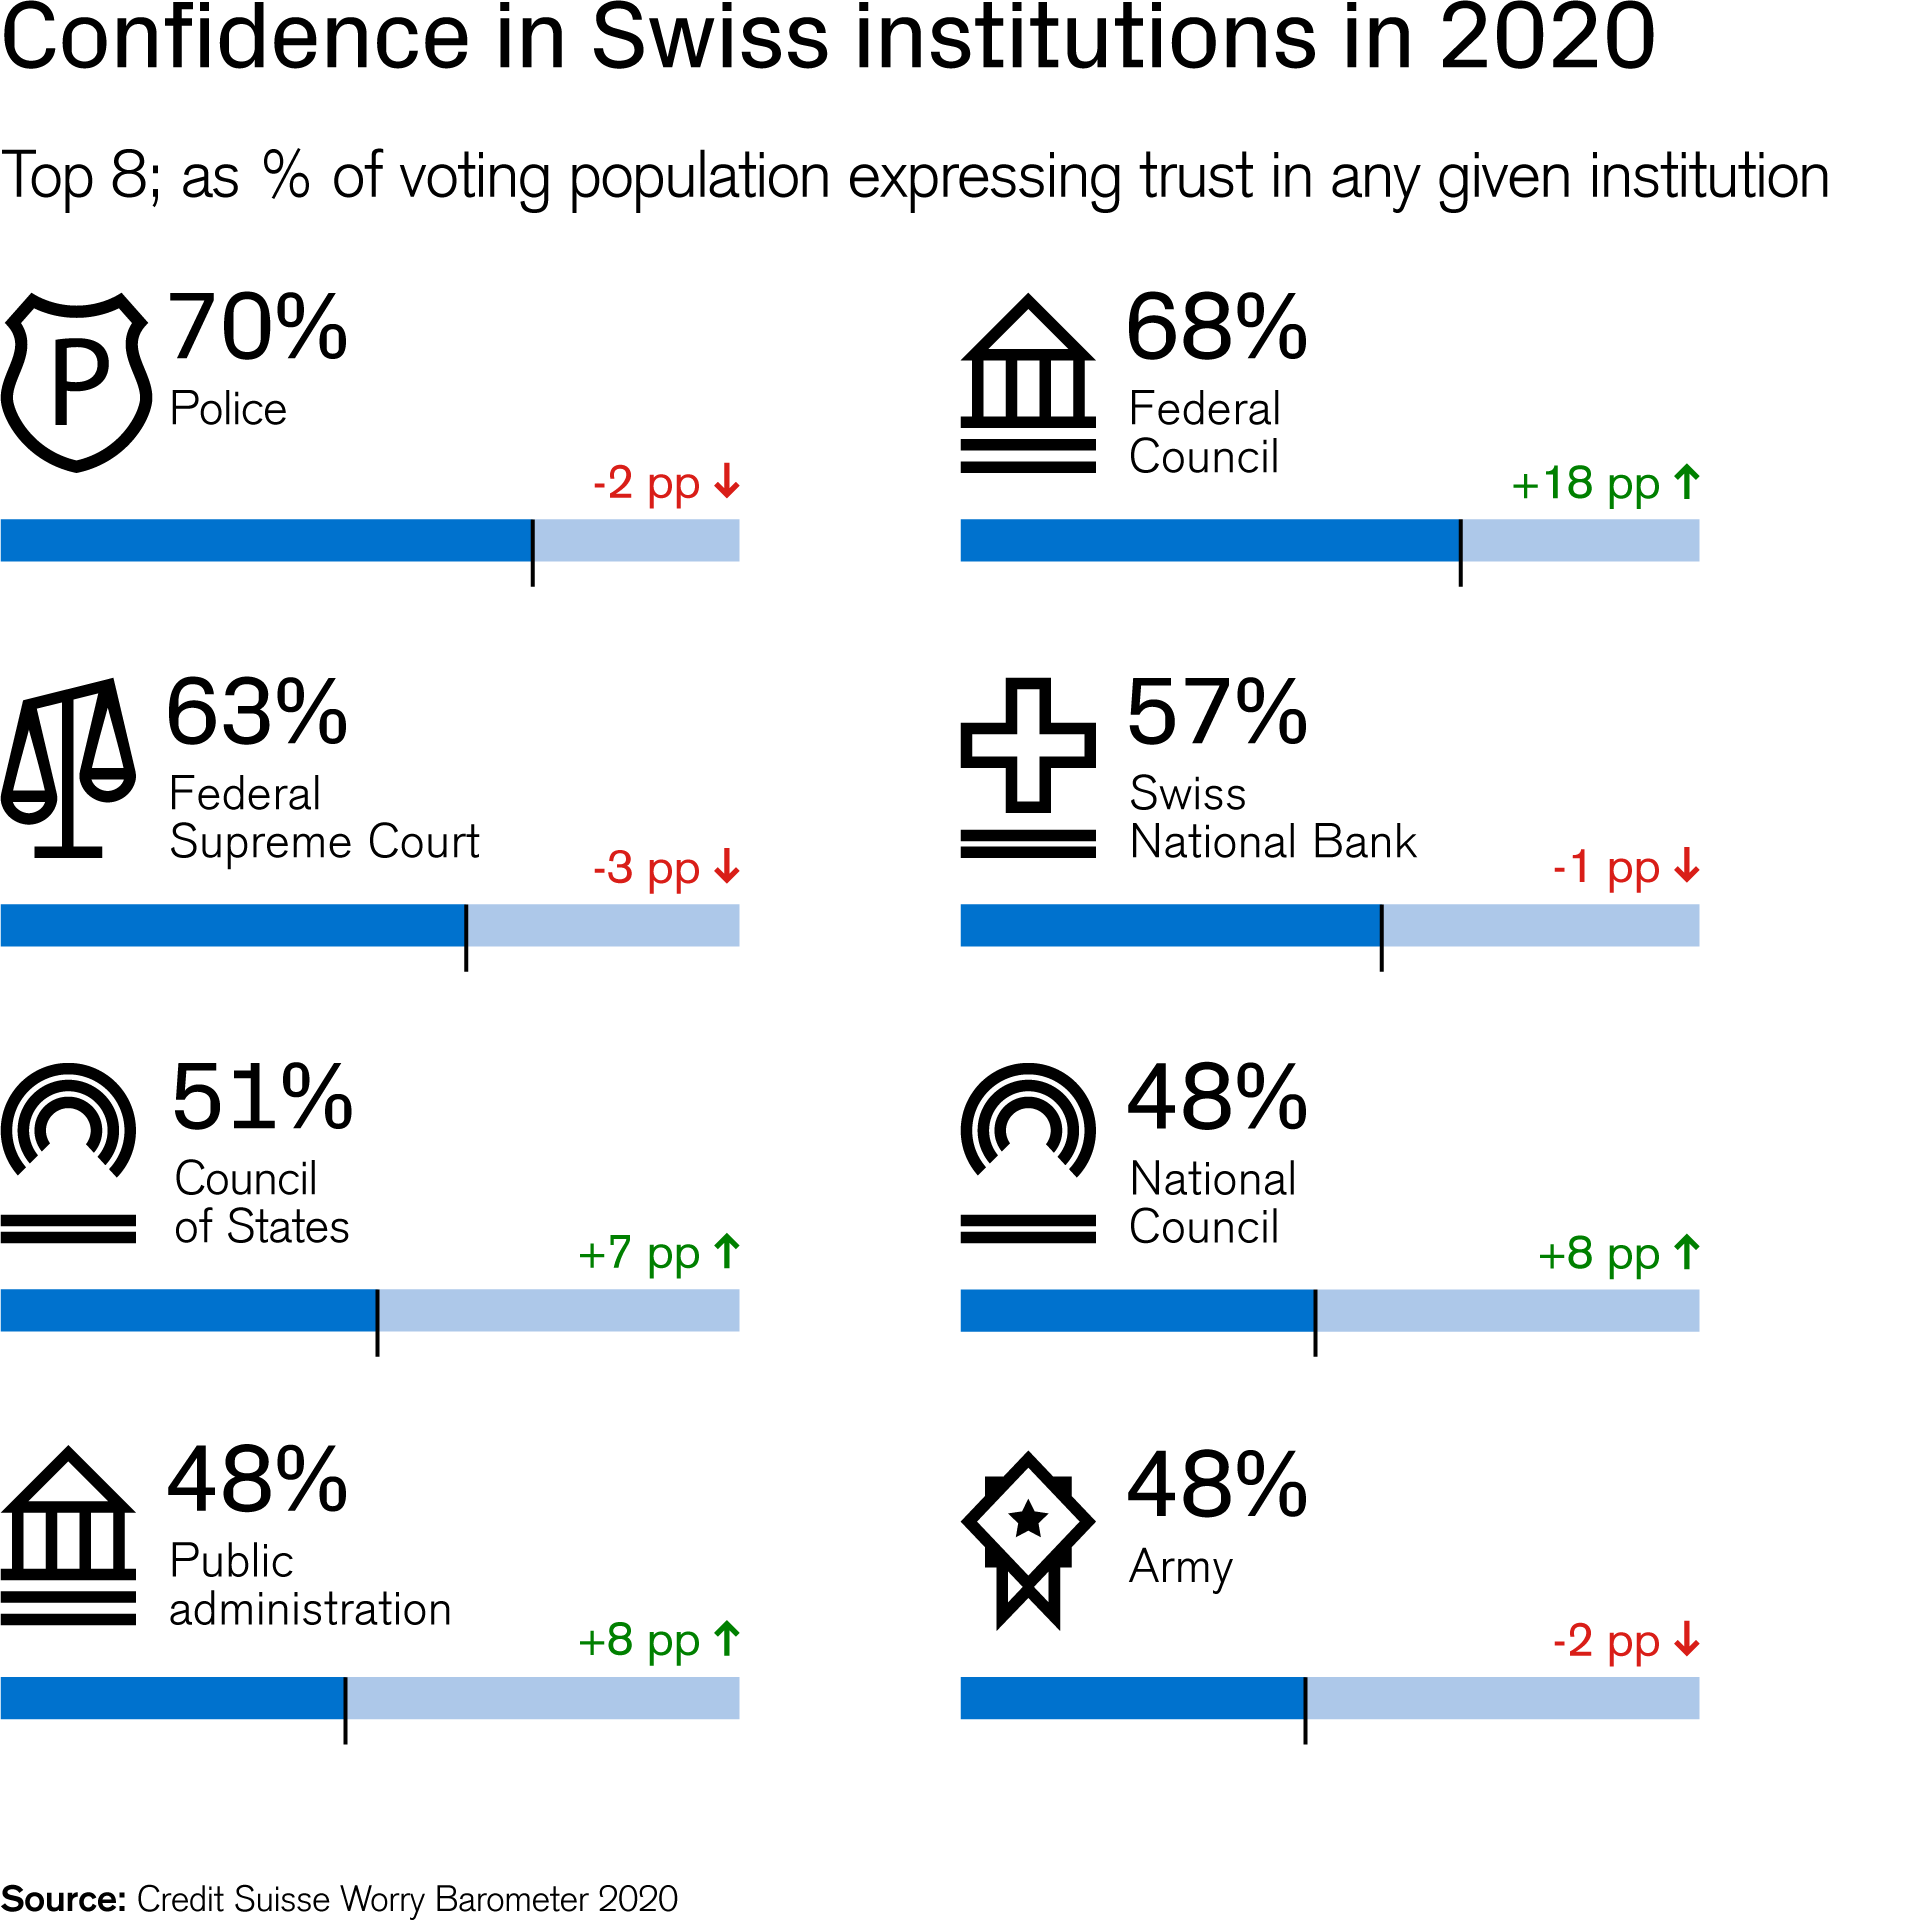 Confidence in Swiss institutions in 2020